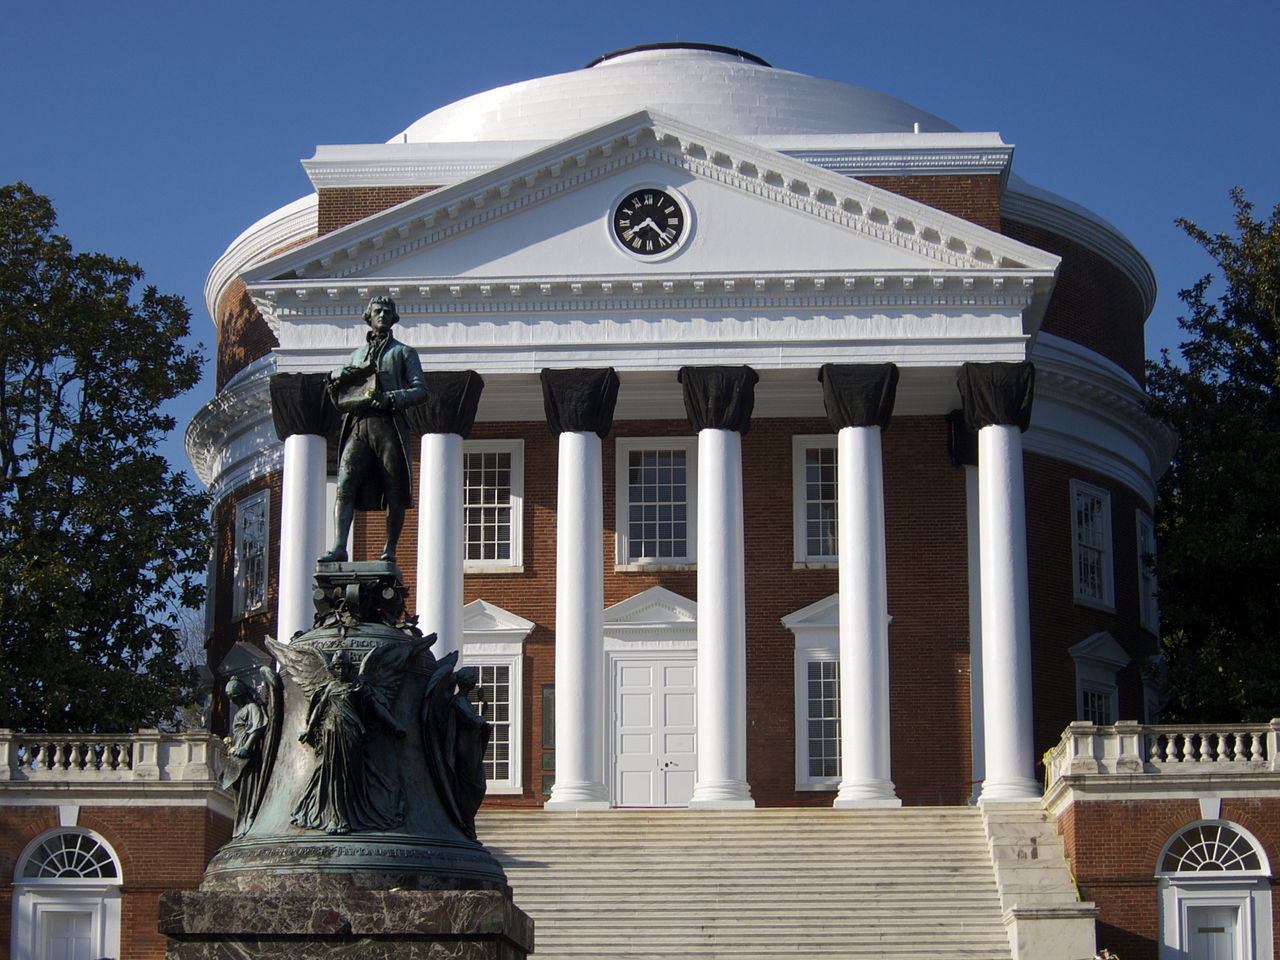 An image of the Rotunda's front